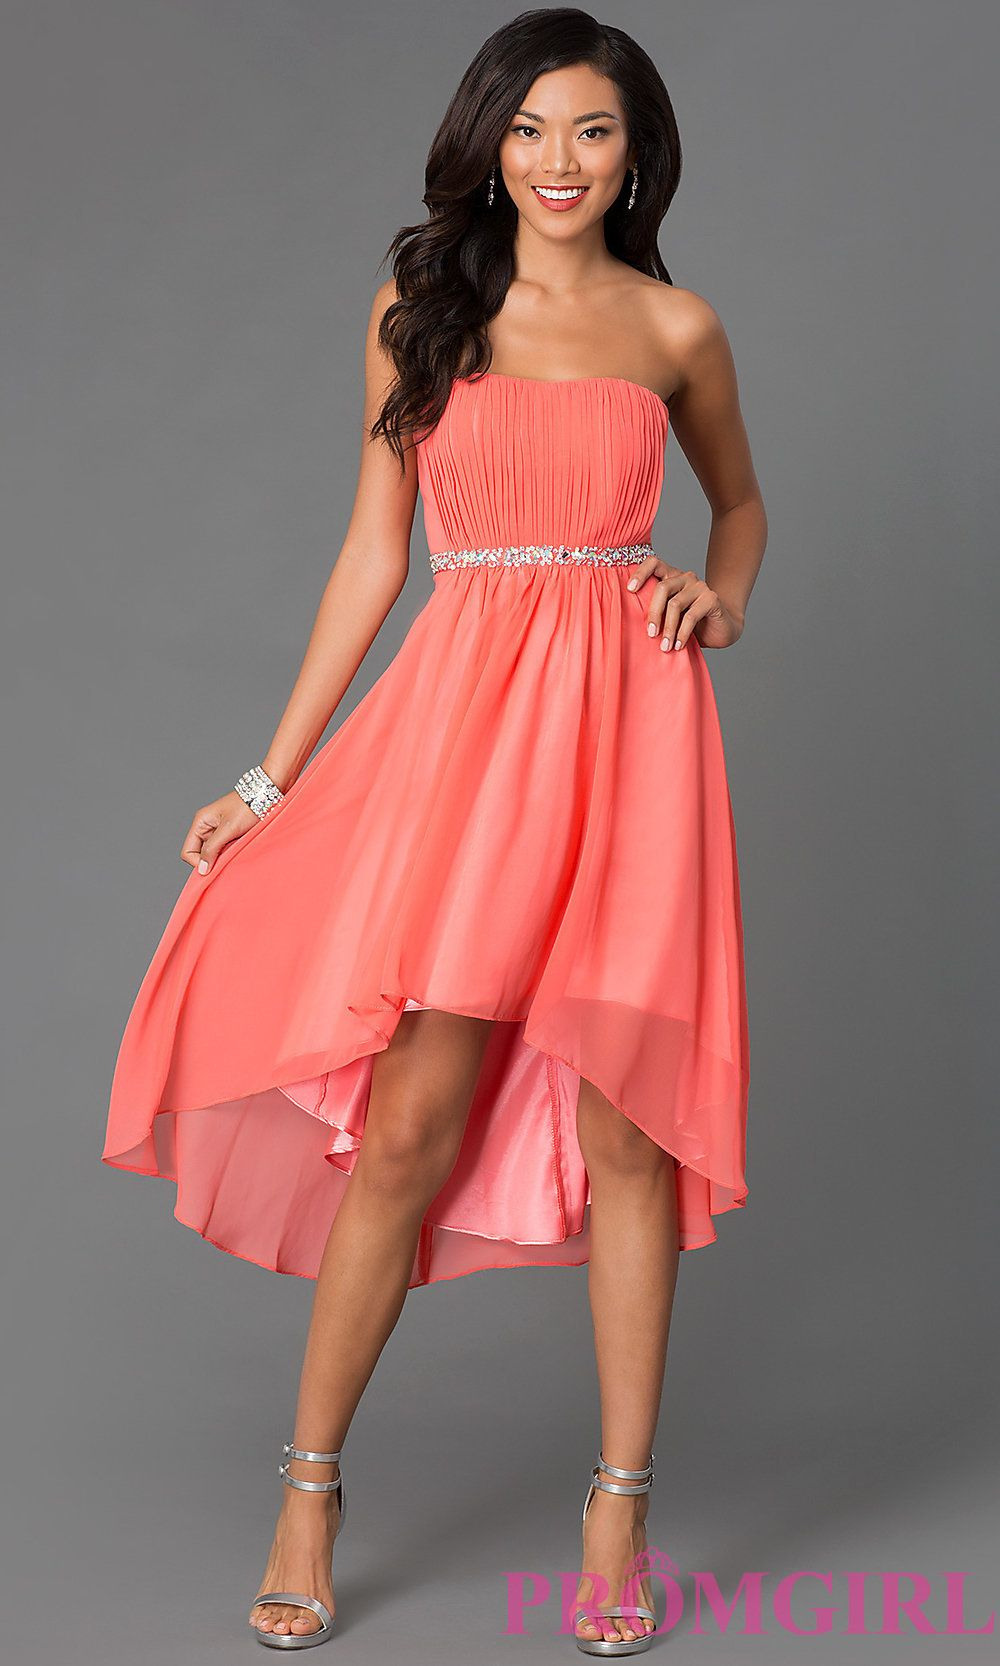 Looks - Prom coral dresses high low video